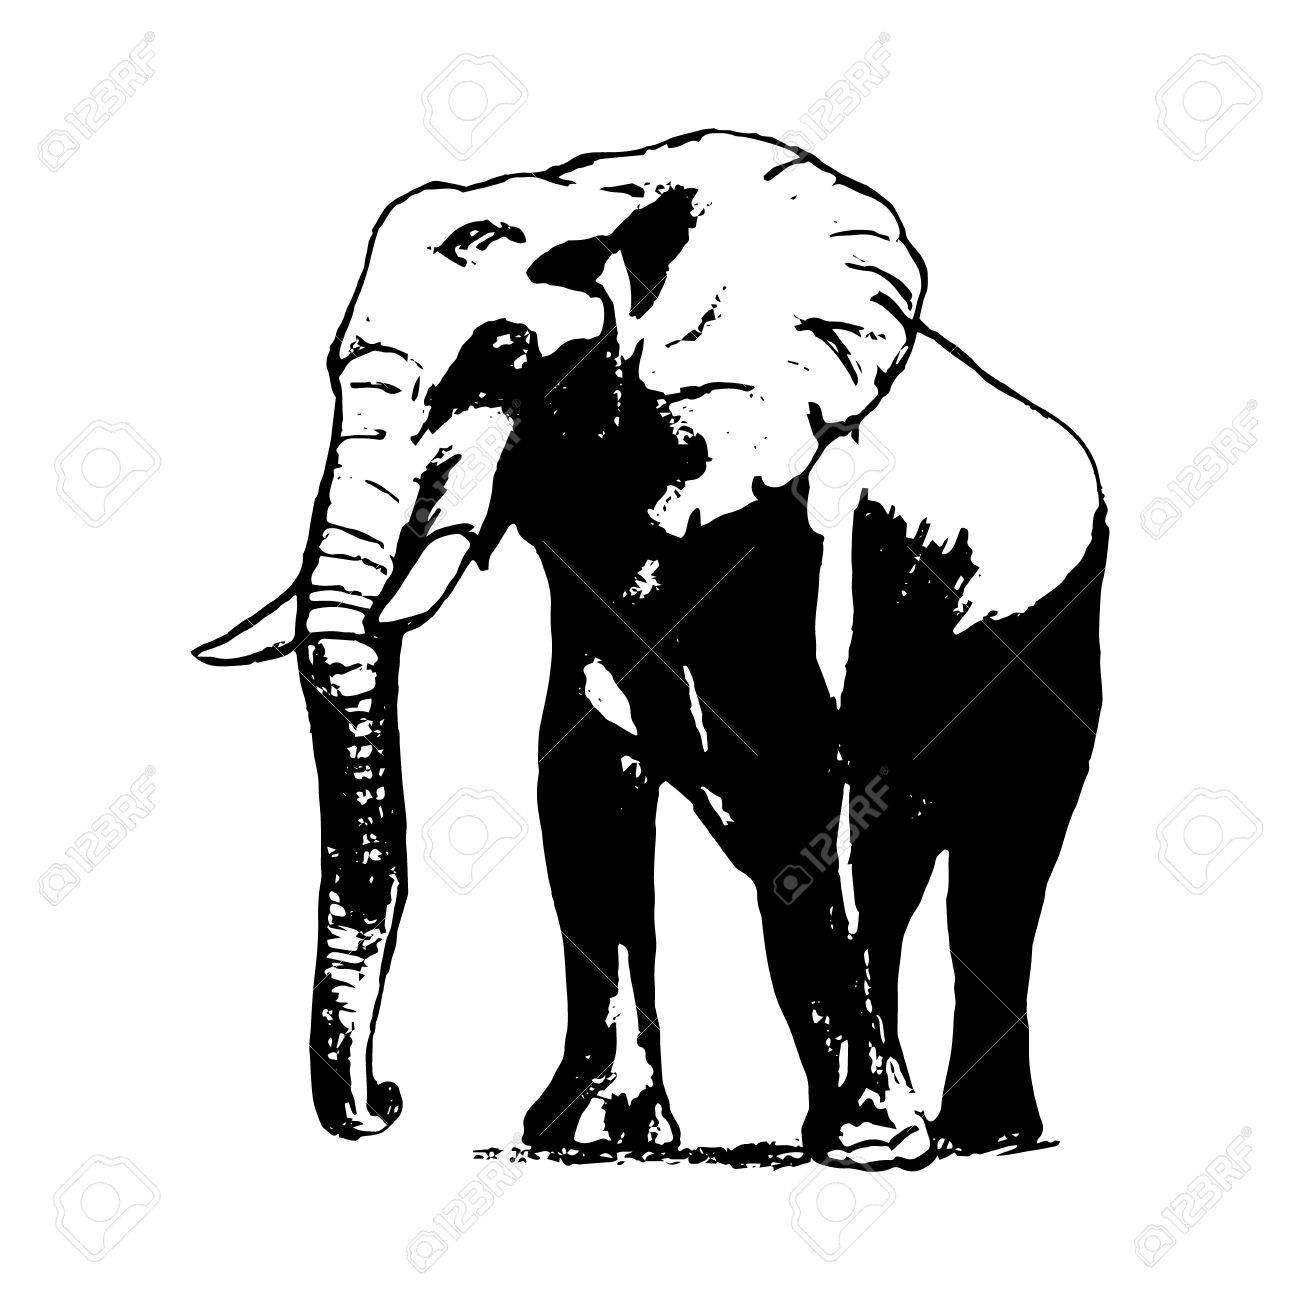 Elephant Drawing A Picture at GetDrawings.com | Free for personal ...